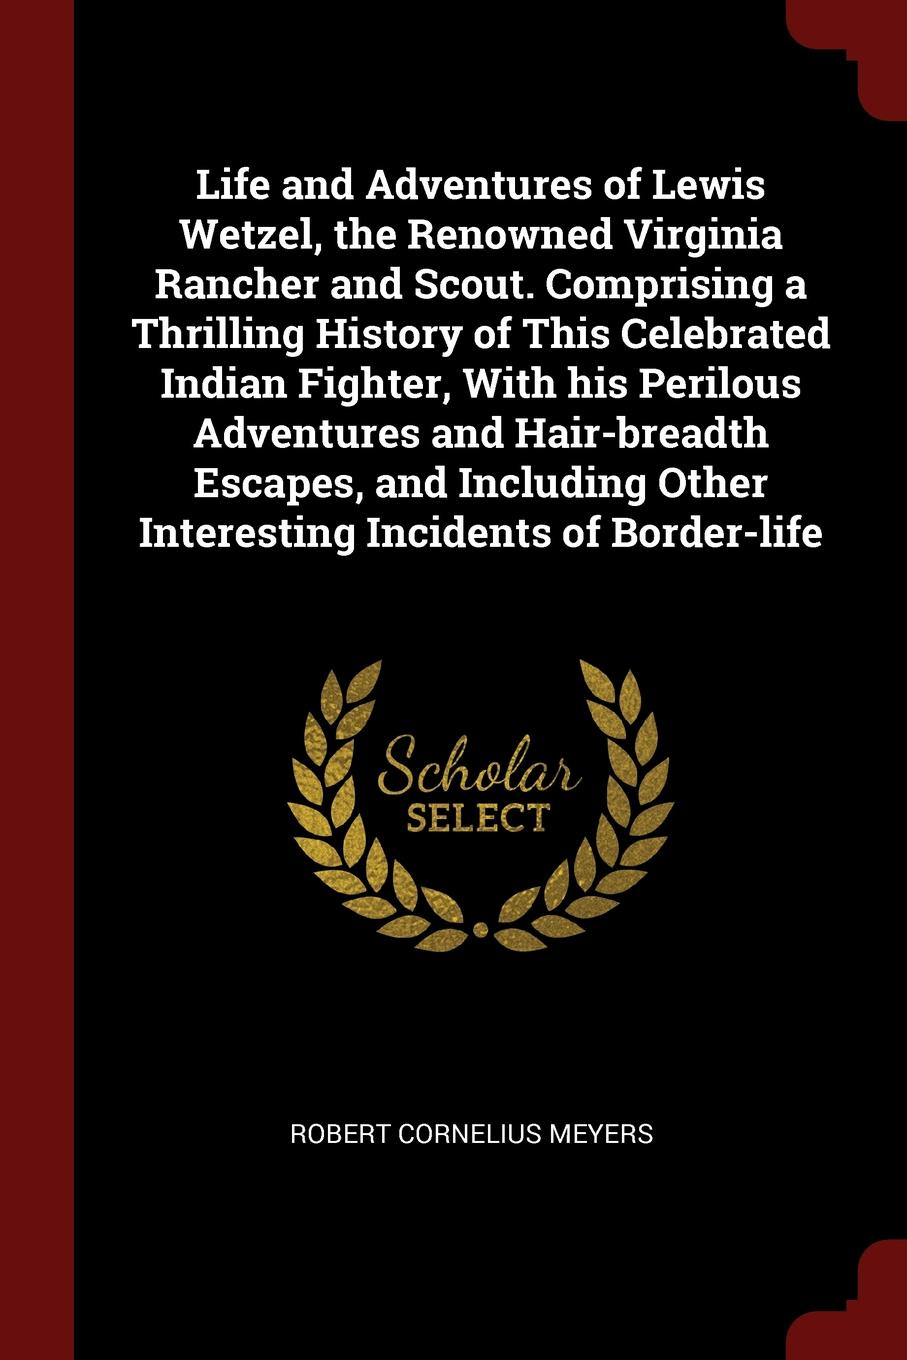 лучшая цена Robert Cornelius Meyers Life and Adventures of Lewis Wetzel, the Renowned Virginia Rancher and Scout. Comprising a Thrilling History of This Celebrated Indian Fighter, With his Perilous Adventures and Hair-breadth Escapes, and Including Other Interesting Incidents of Bor...